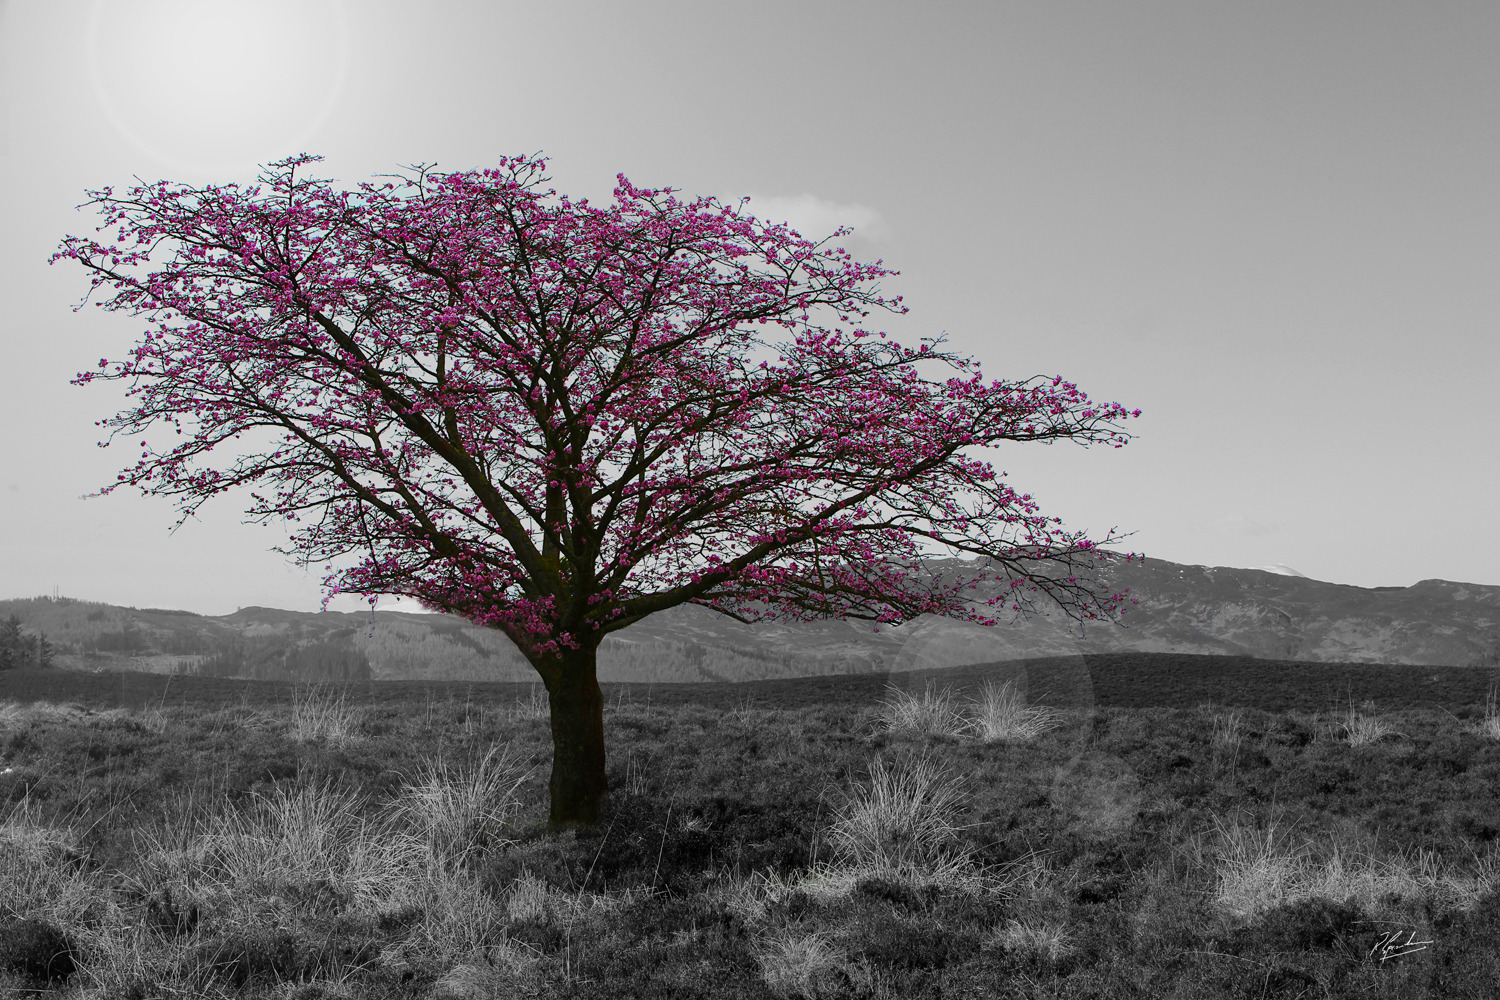 'Lonely Blossom'